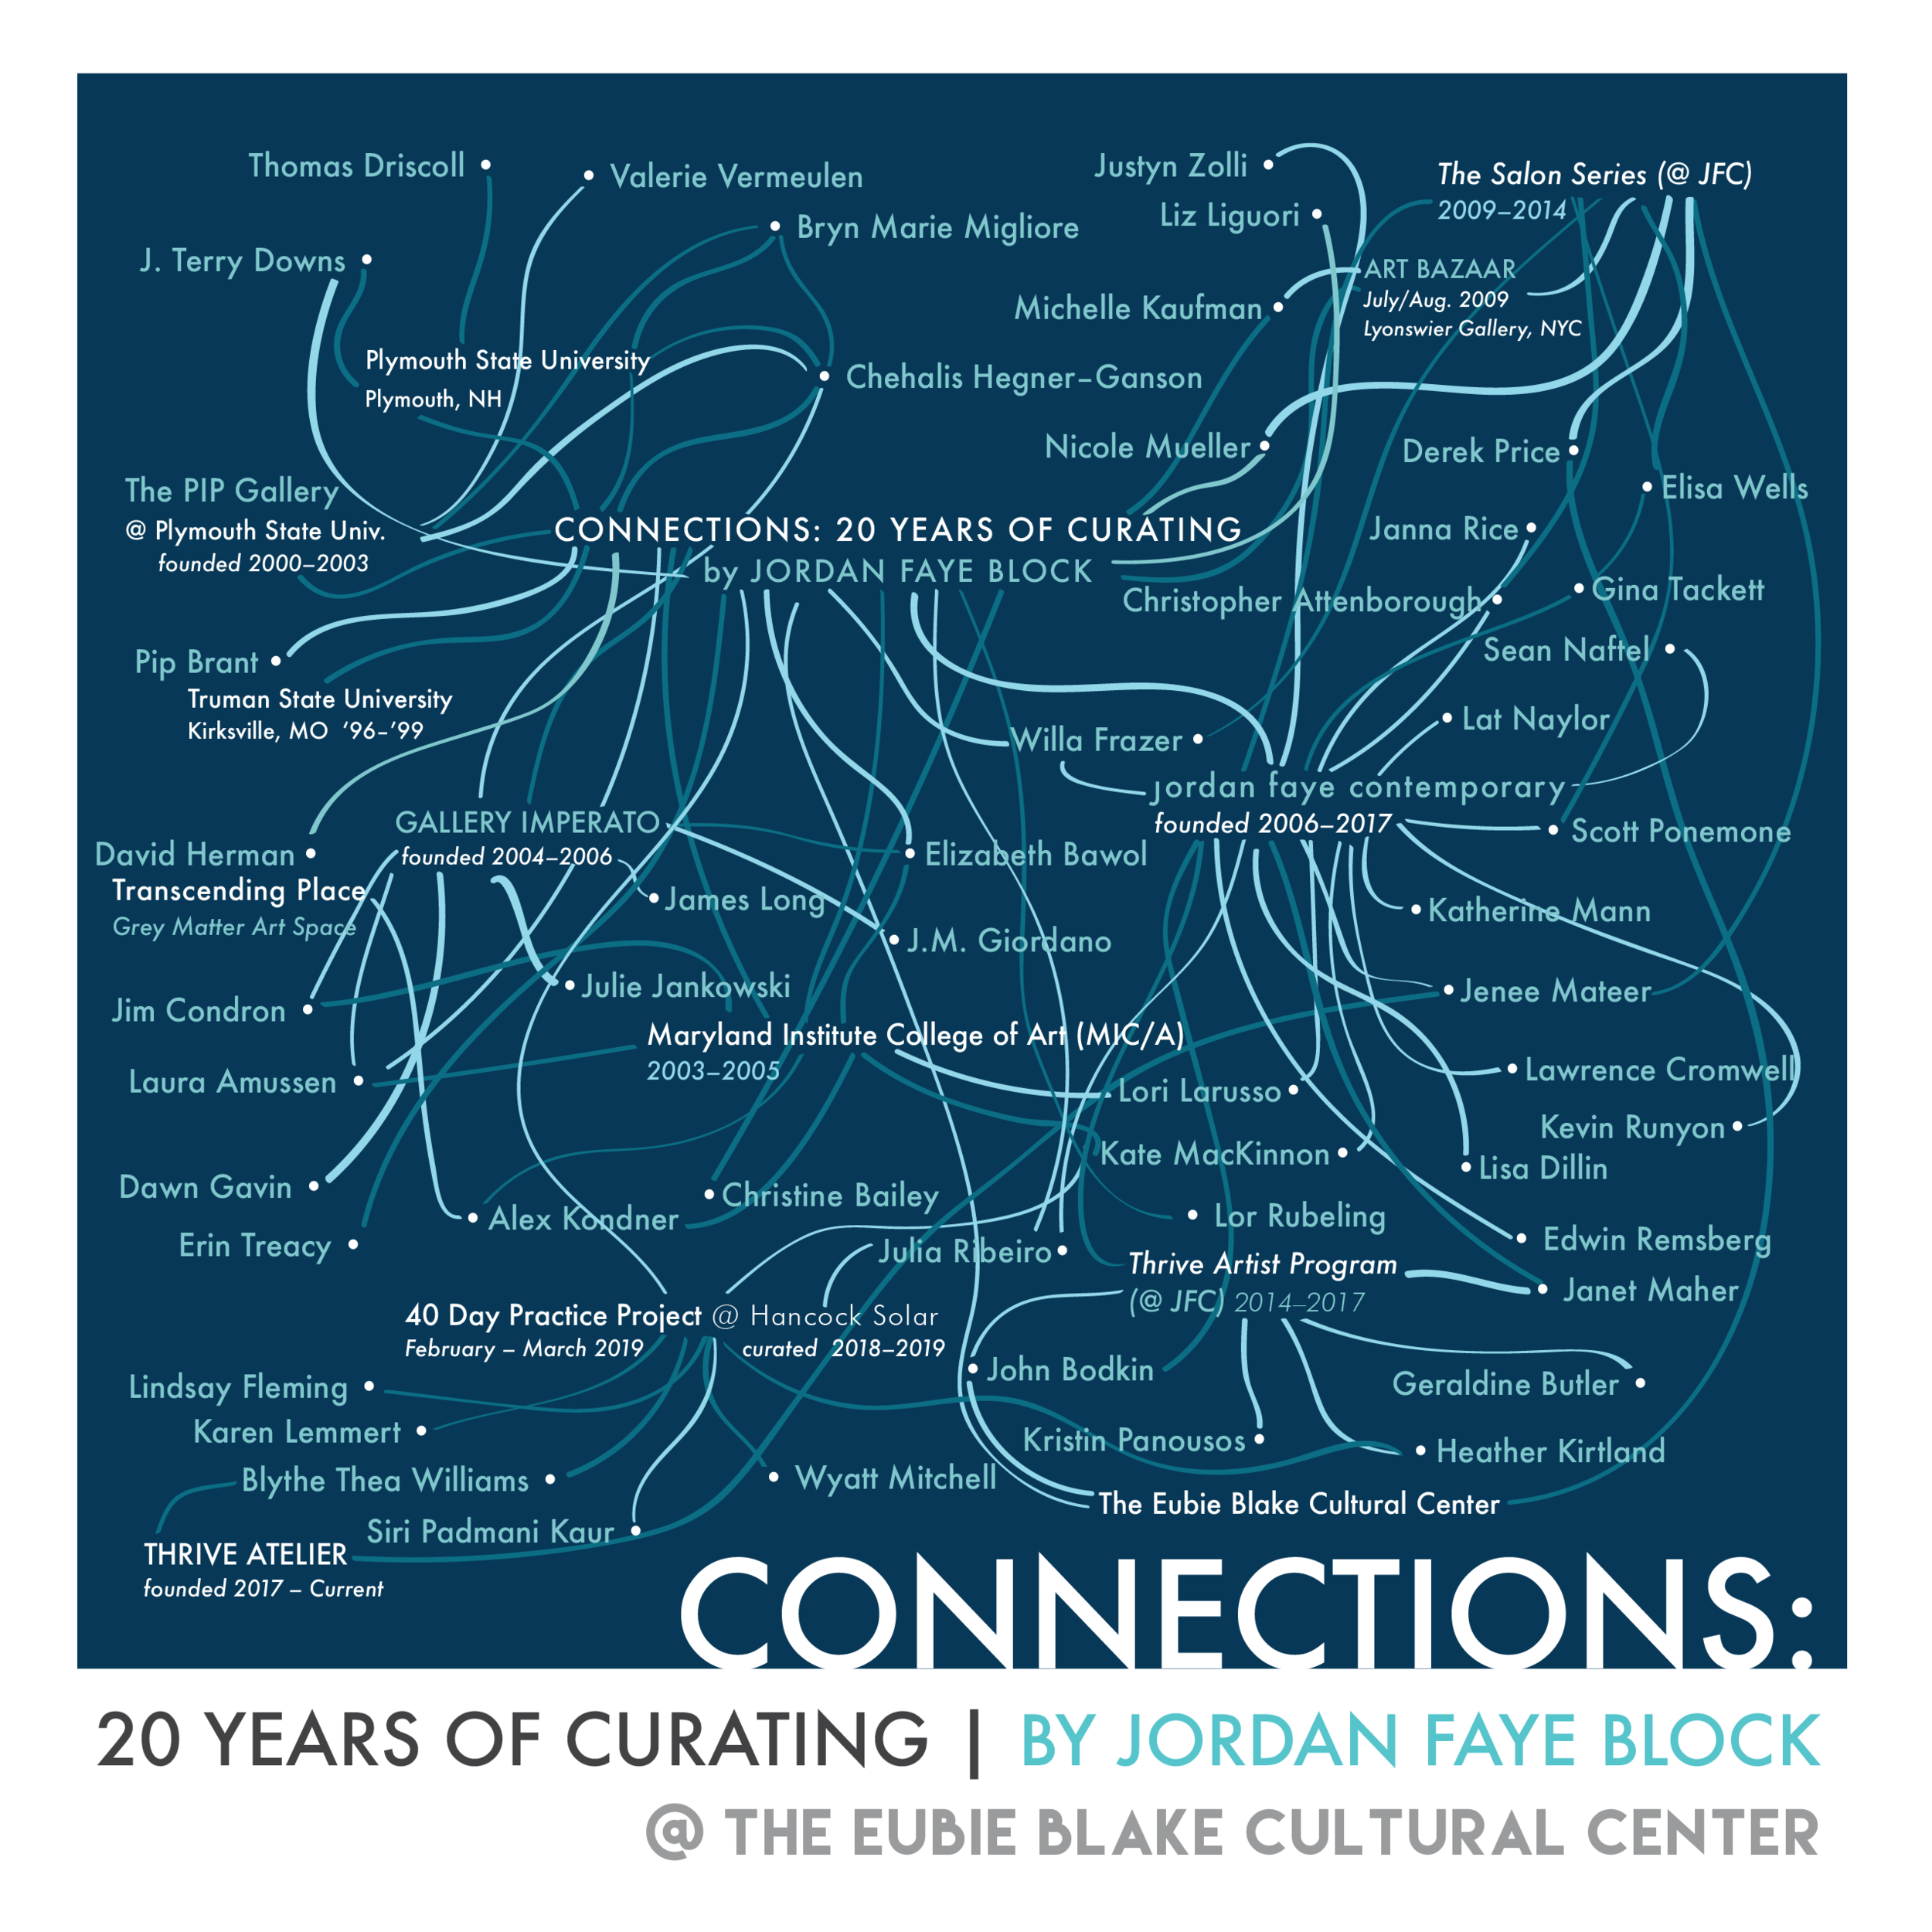 Connections.20YearsofCurating-Image.png